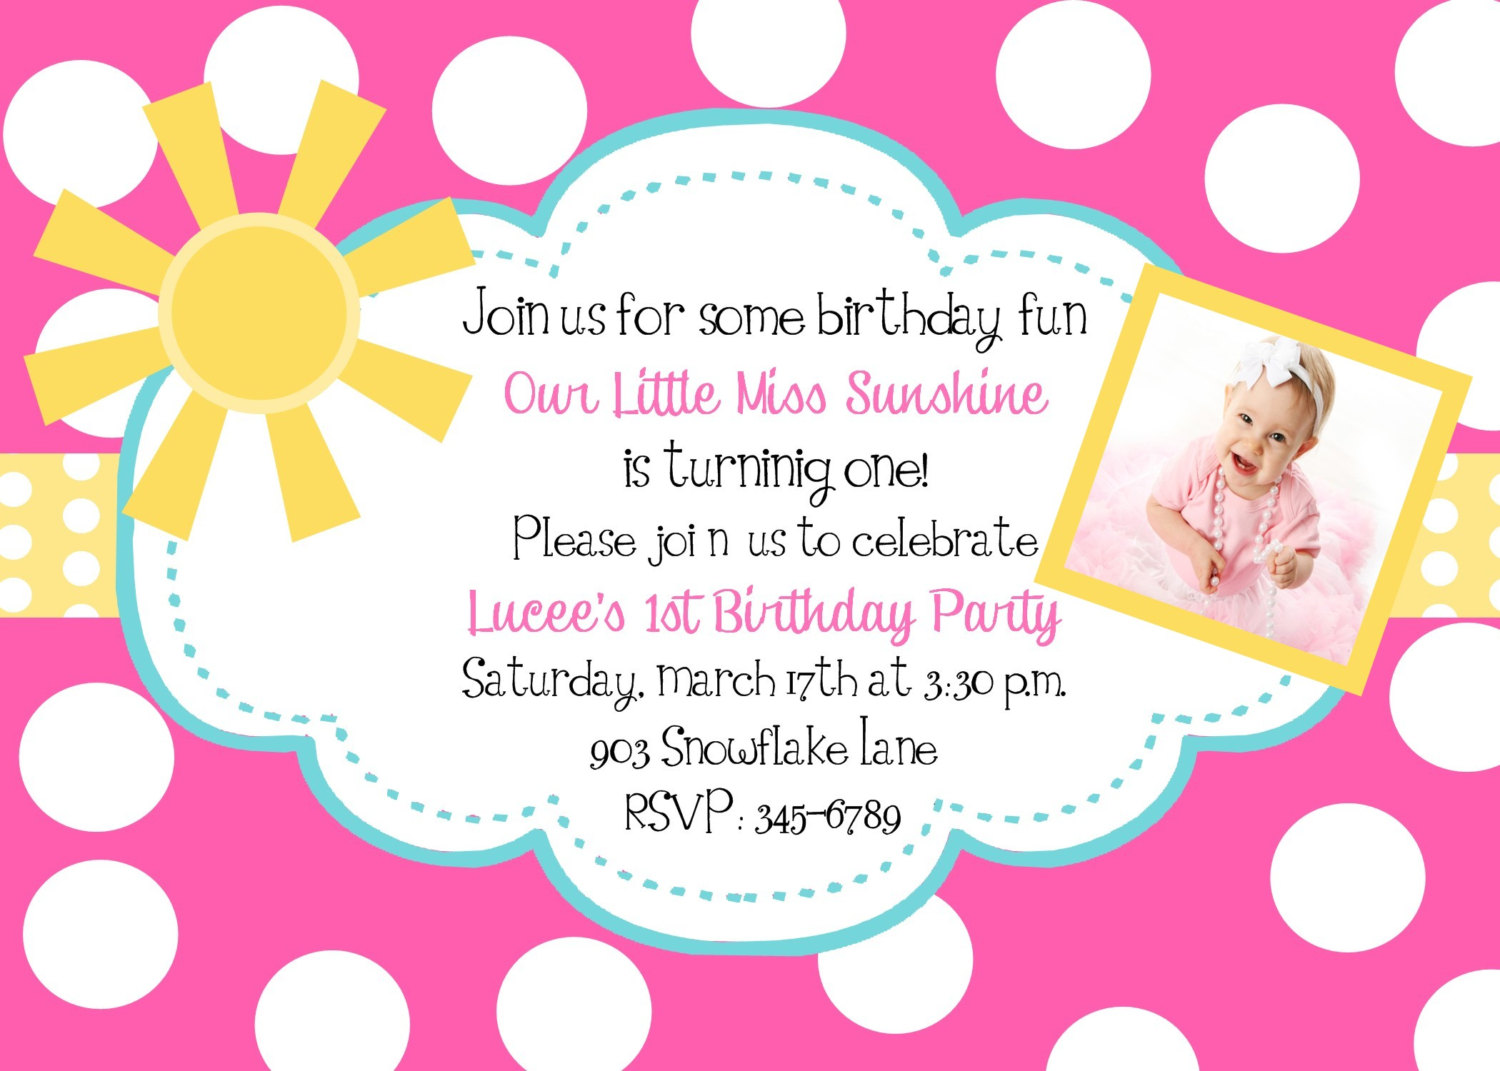 birthday invitation quotes ; Birthday-Party-Invitation-Wording-and-get-inspired-to-create-your-Birthday-invitation-with-smart-design-1